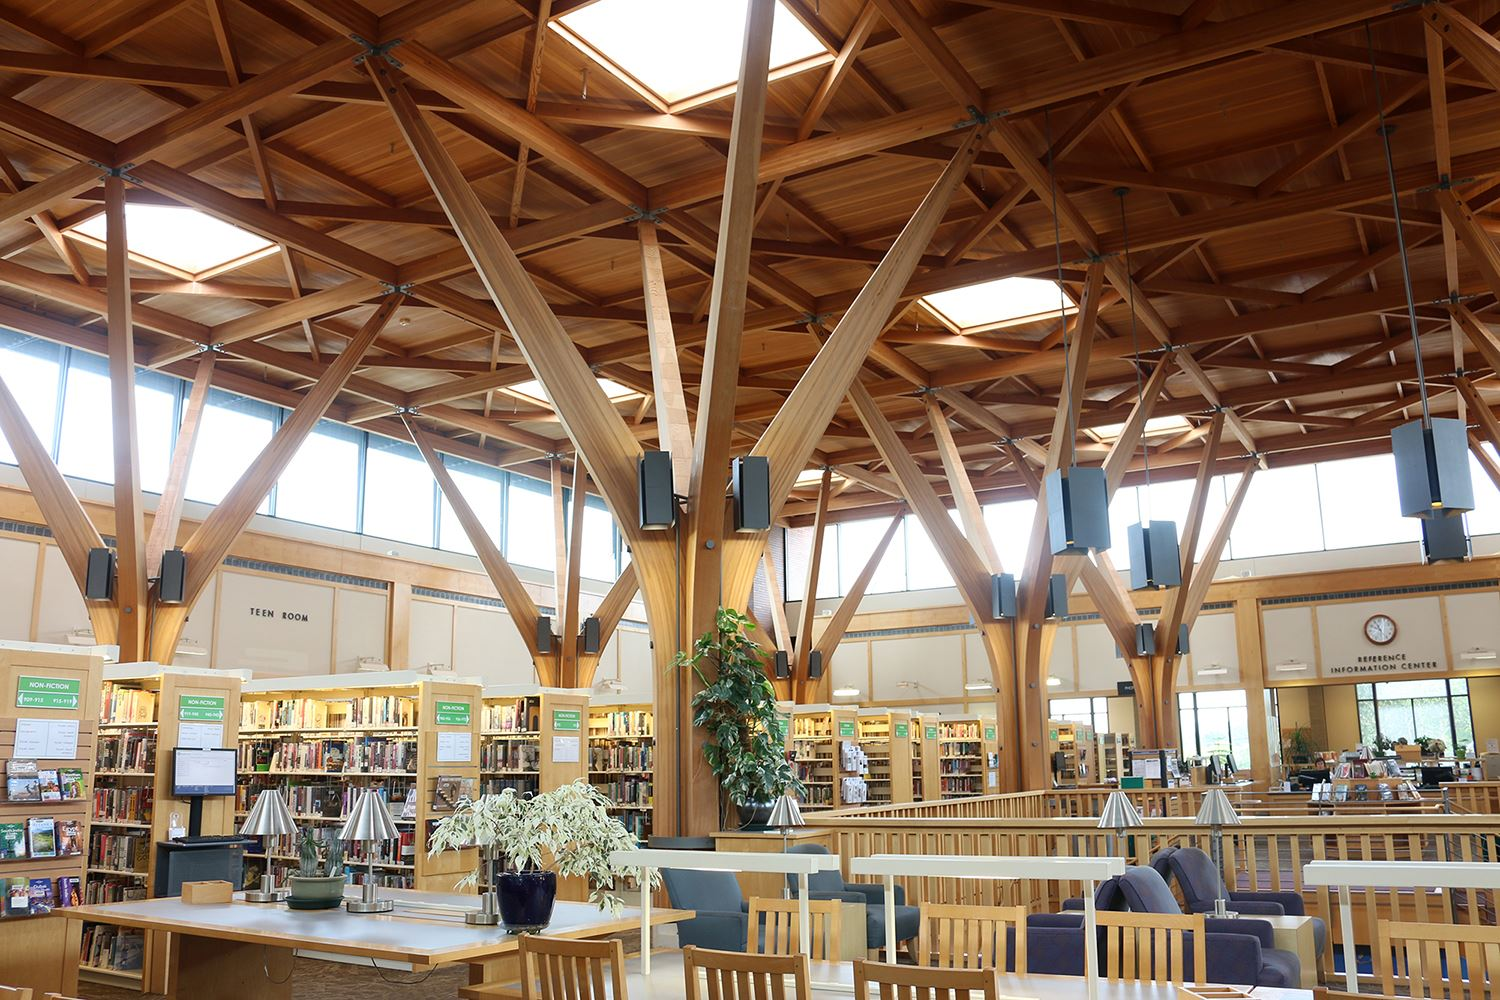 Photo of the inside of a library building with many windows and a wood ceiling and pillars.